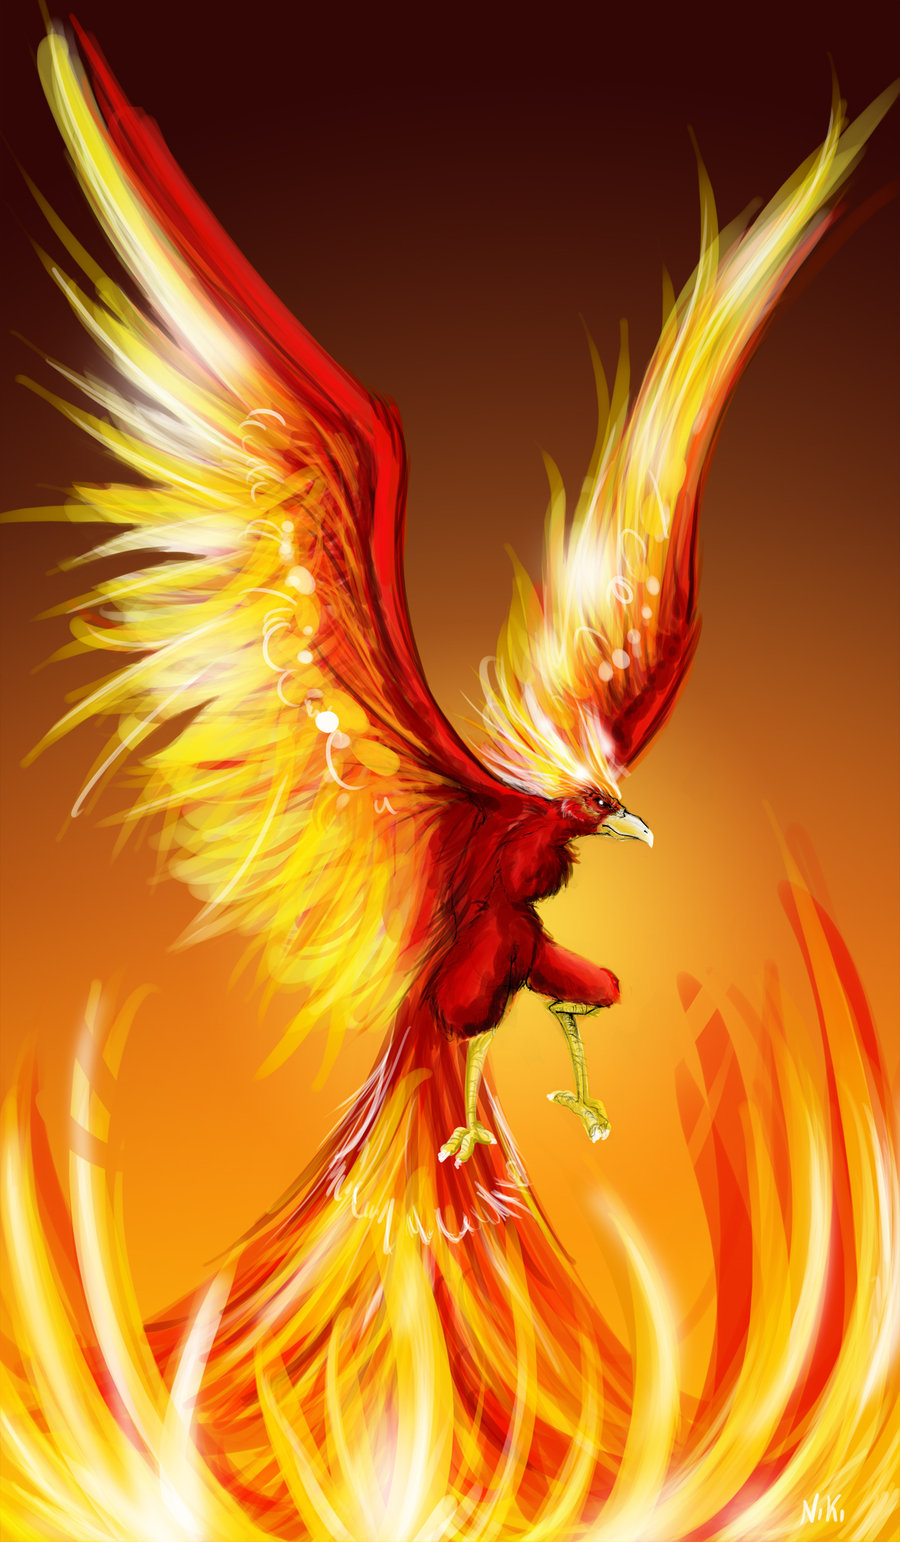 Phoenix in hd images and wallpapers - Fenix bird hd images ...